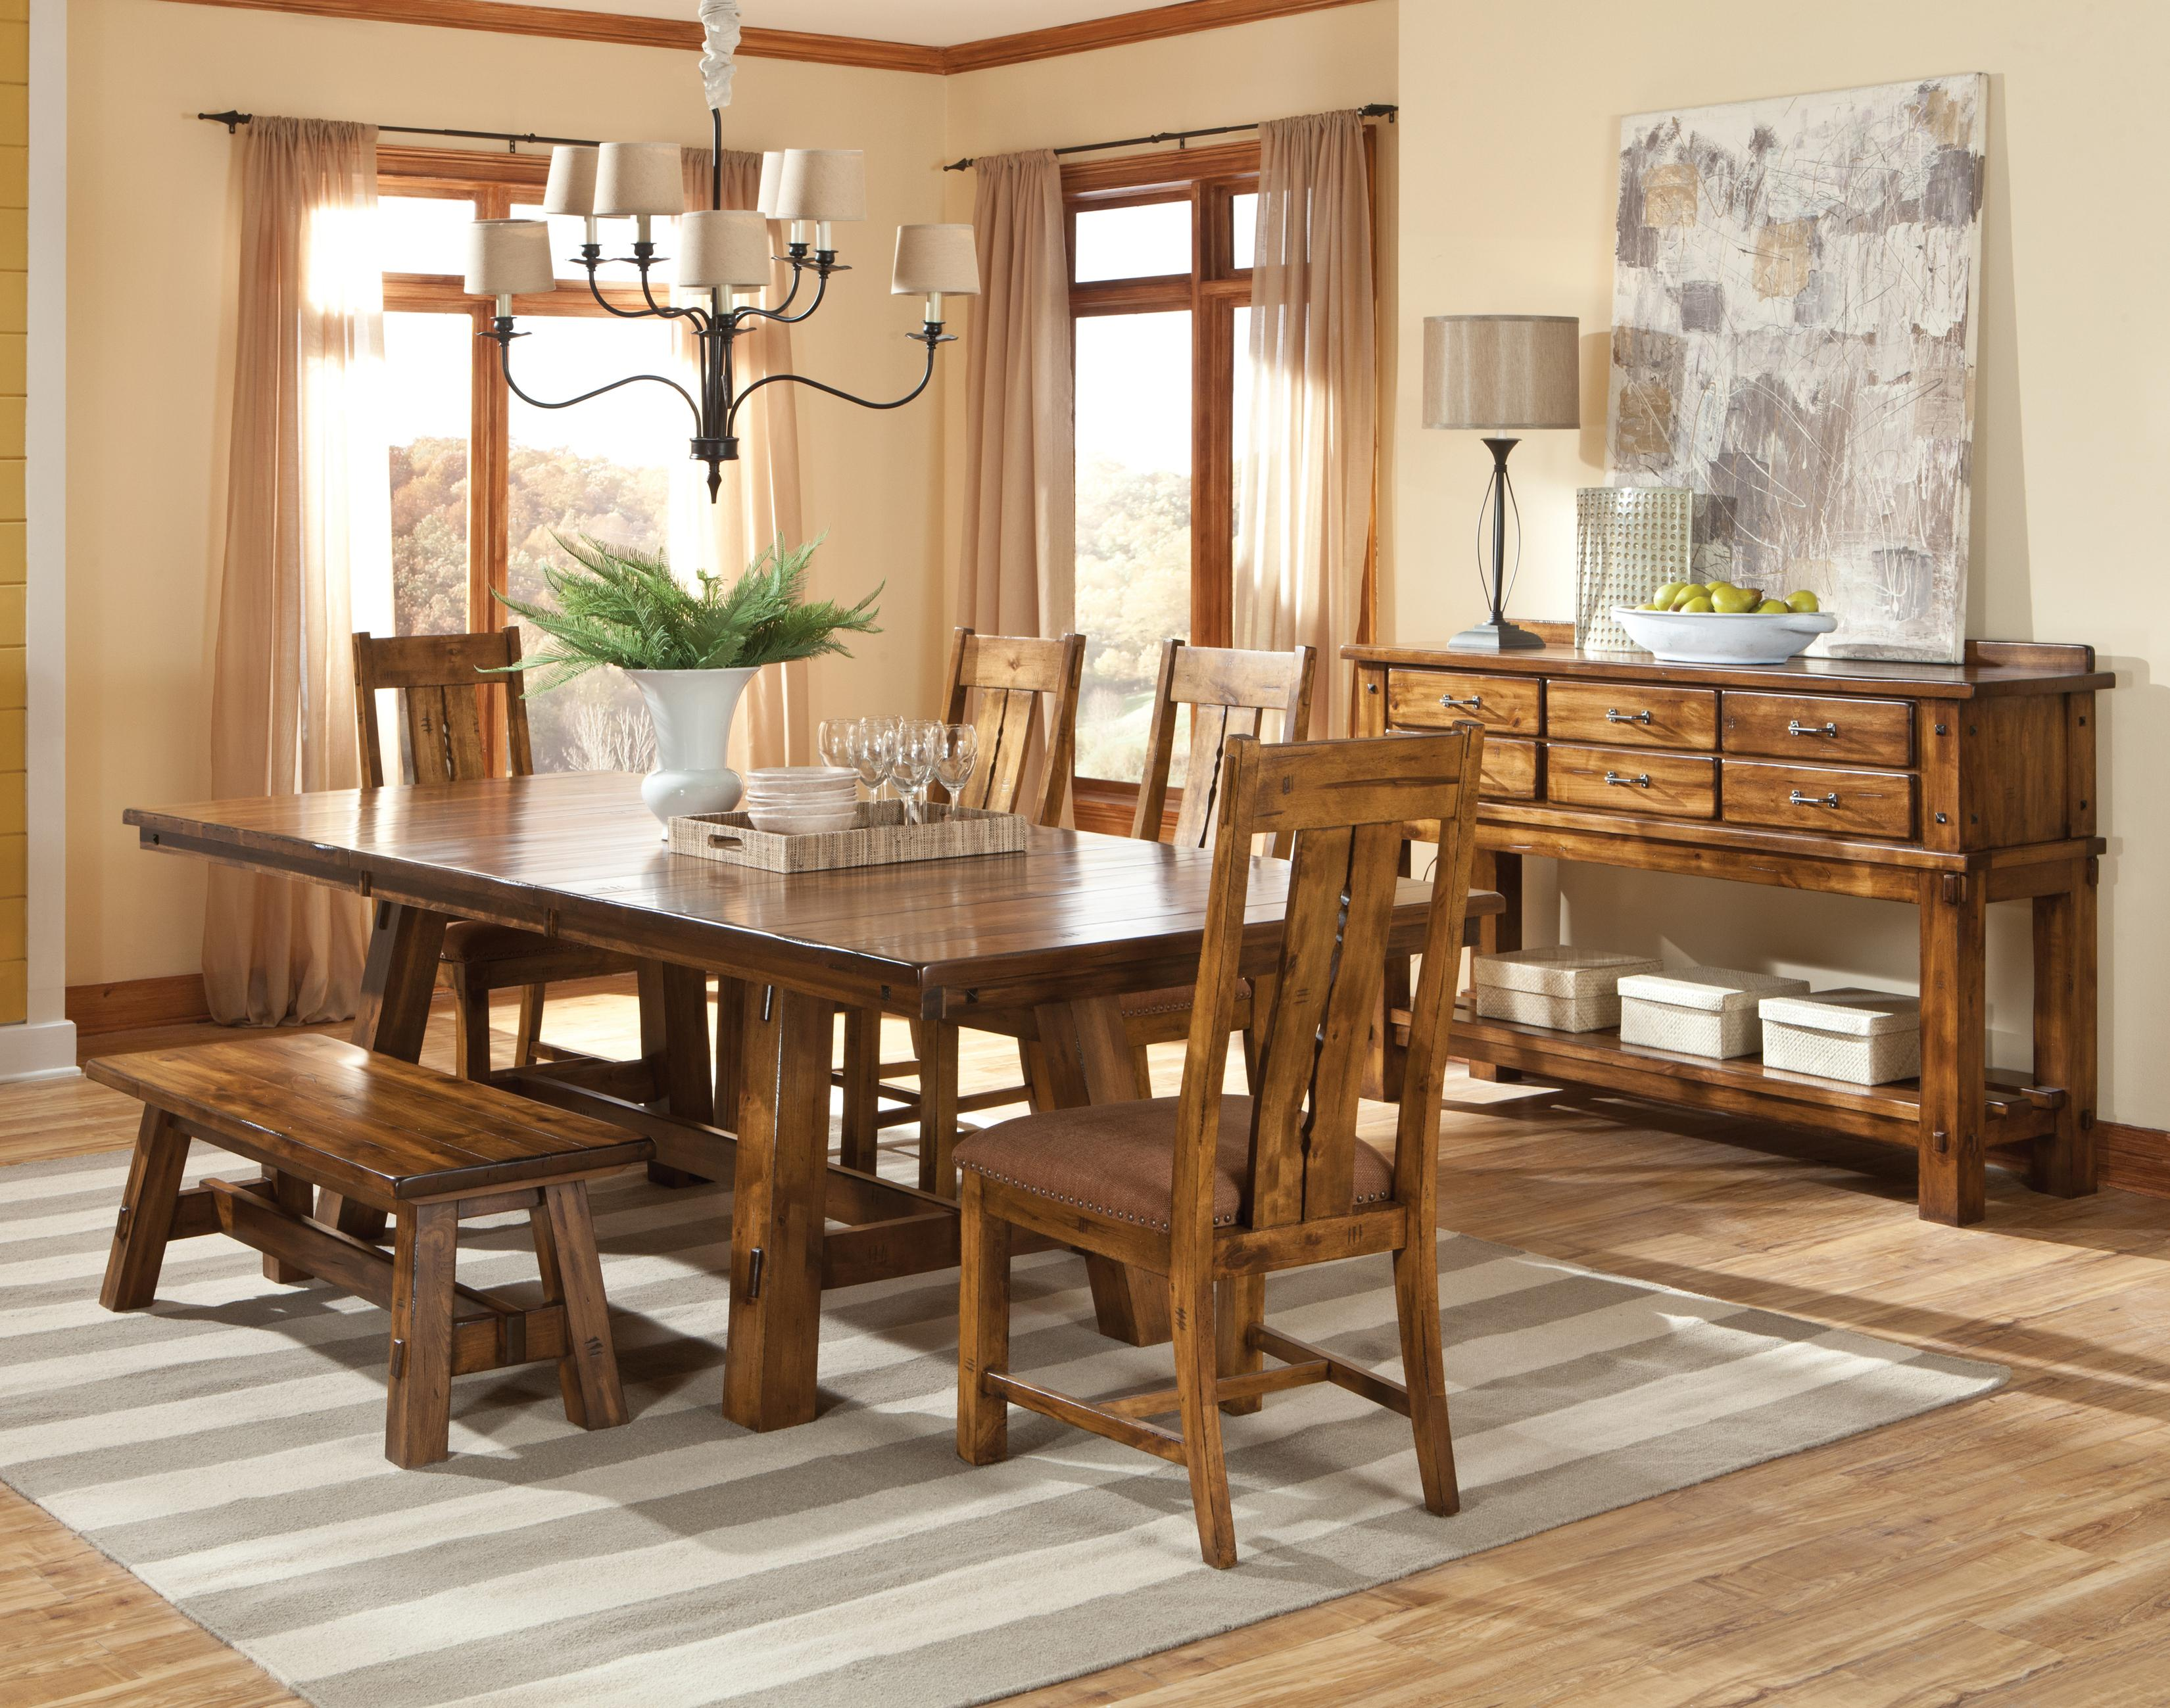 6 Piece Wood Table, Chairs and Bench Set by Intercon | Wolf and ...